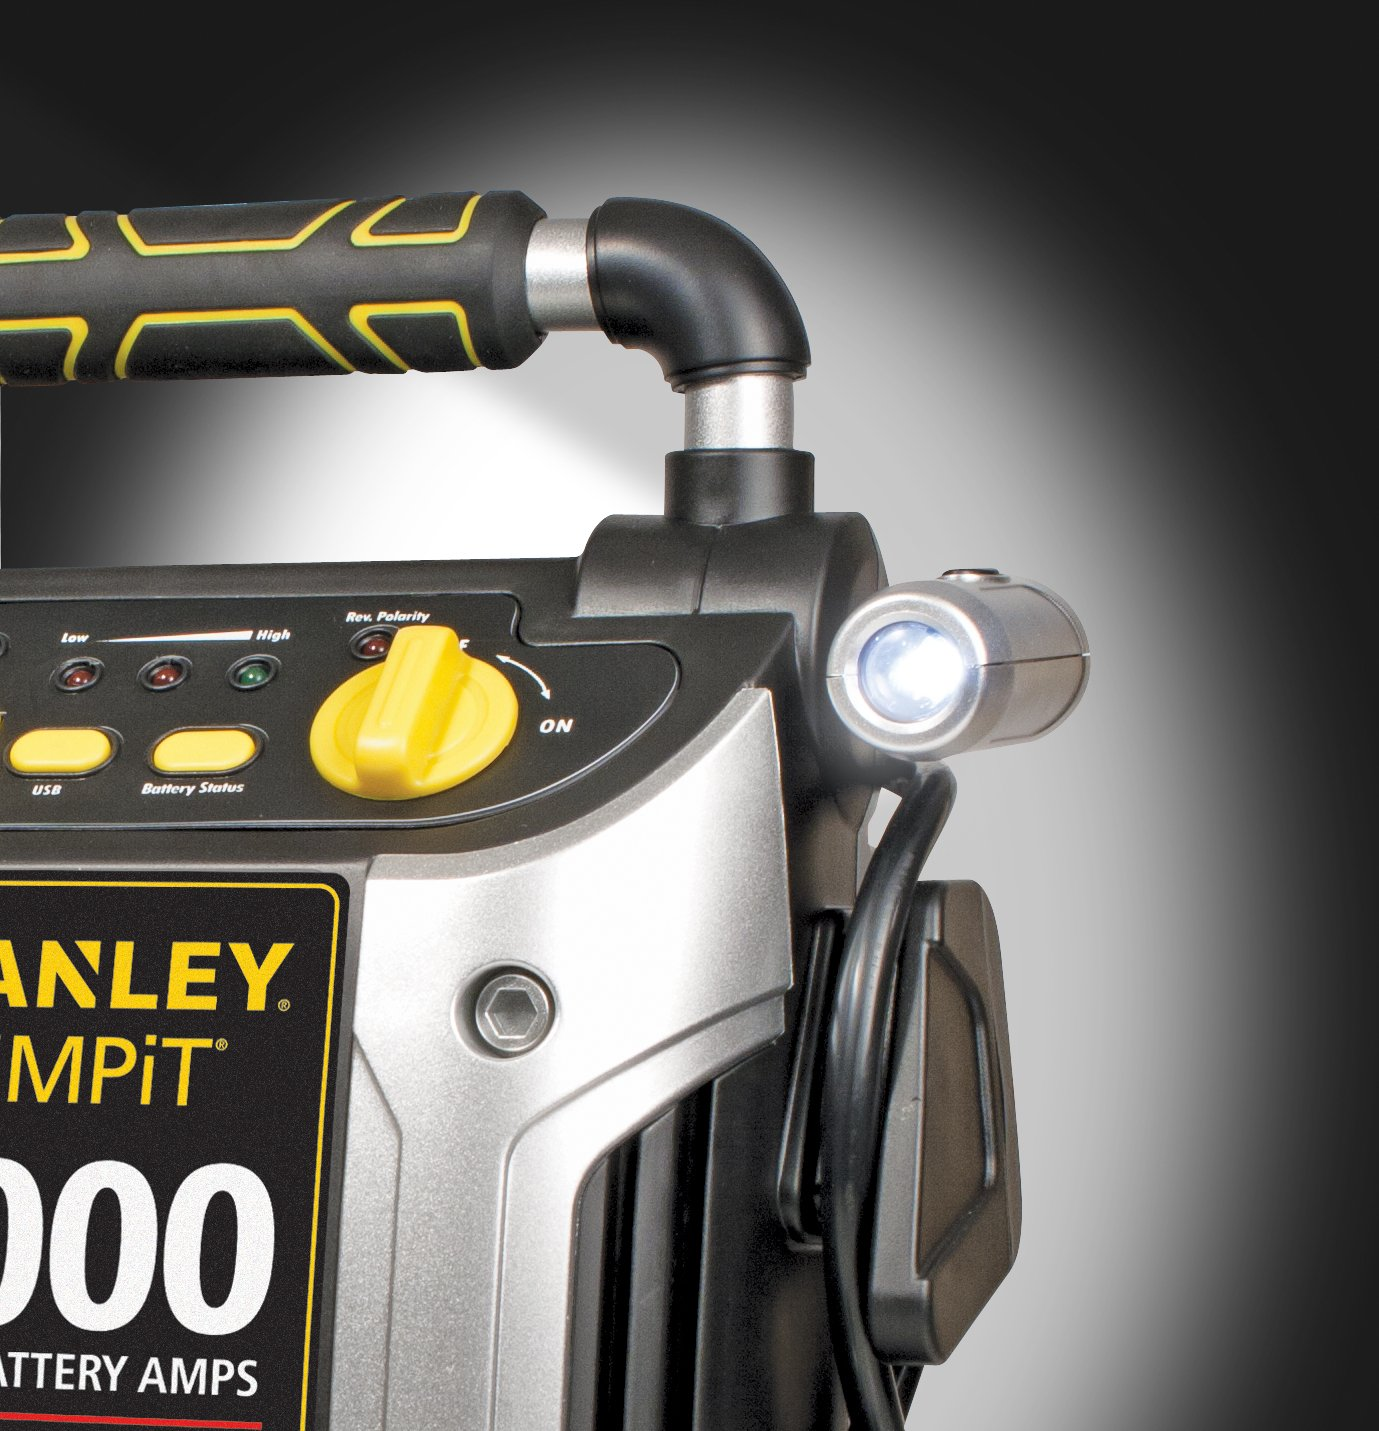 600 Peak//300 Instant Amps with Battery Clamps STANLEY J309 Power Station Jump Starter